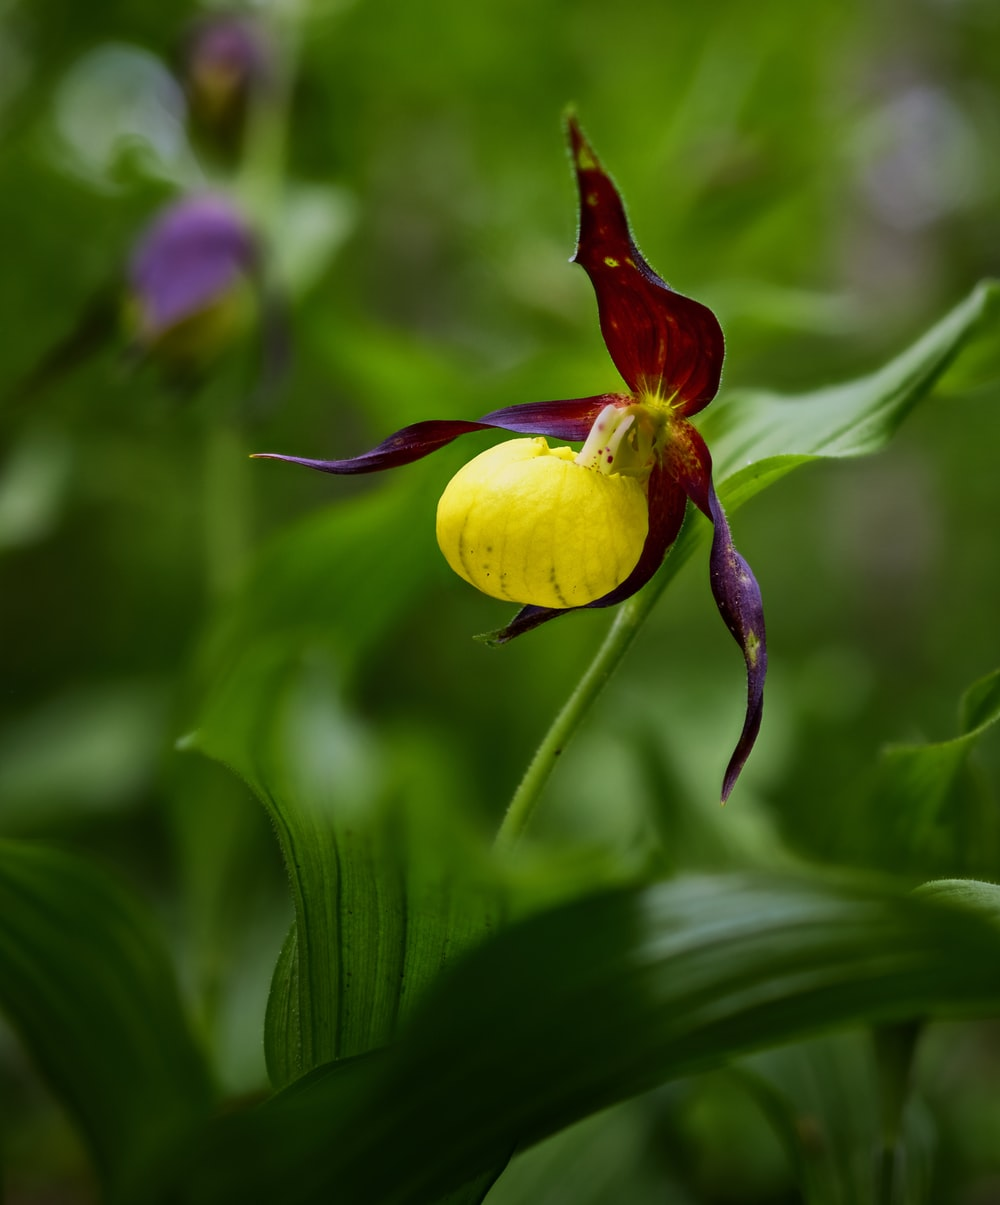 yellow and purple flower bud in close up photography